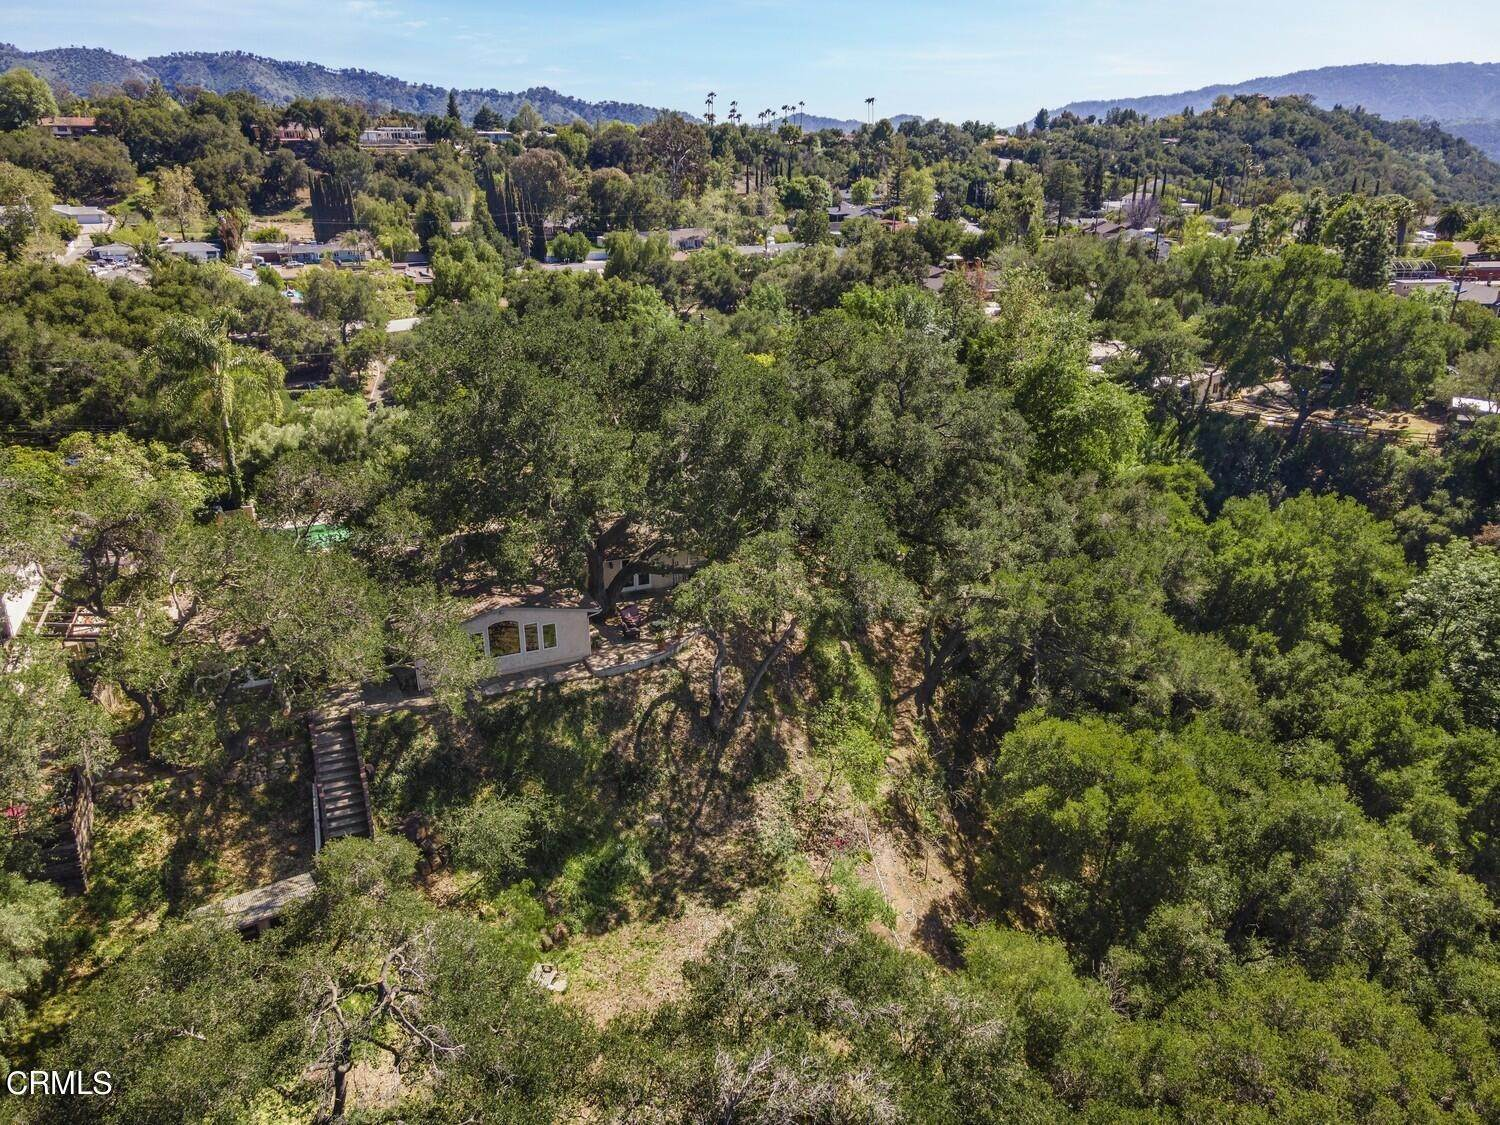 37. Single Family Homes for Sale at 170 Brandt Avenue Oak View, California 93022 United States